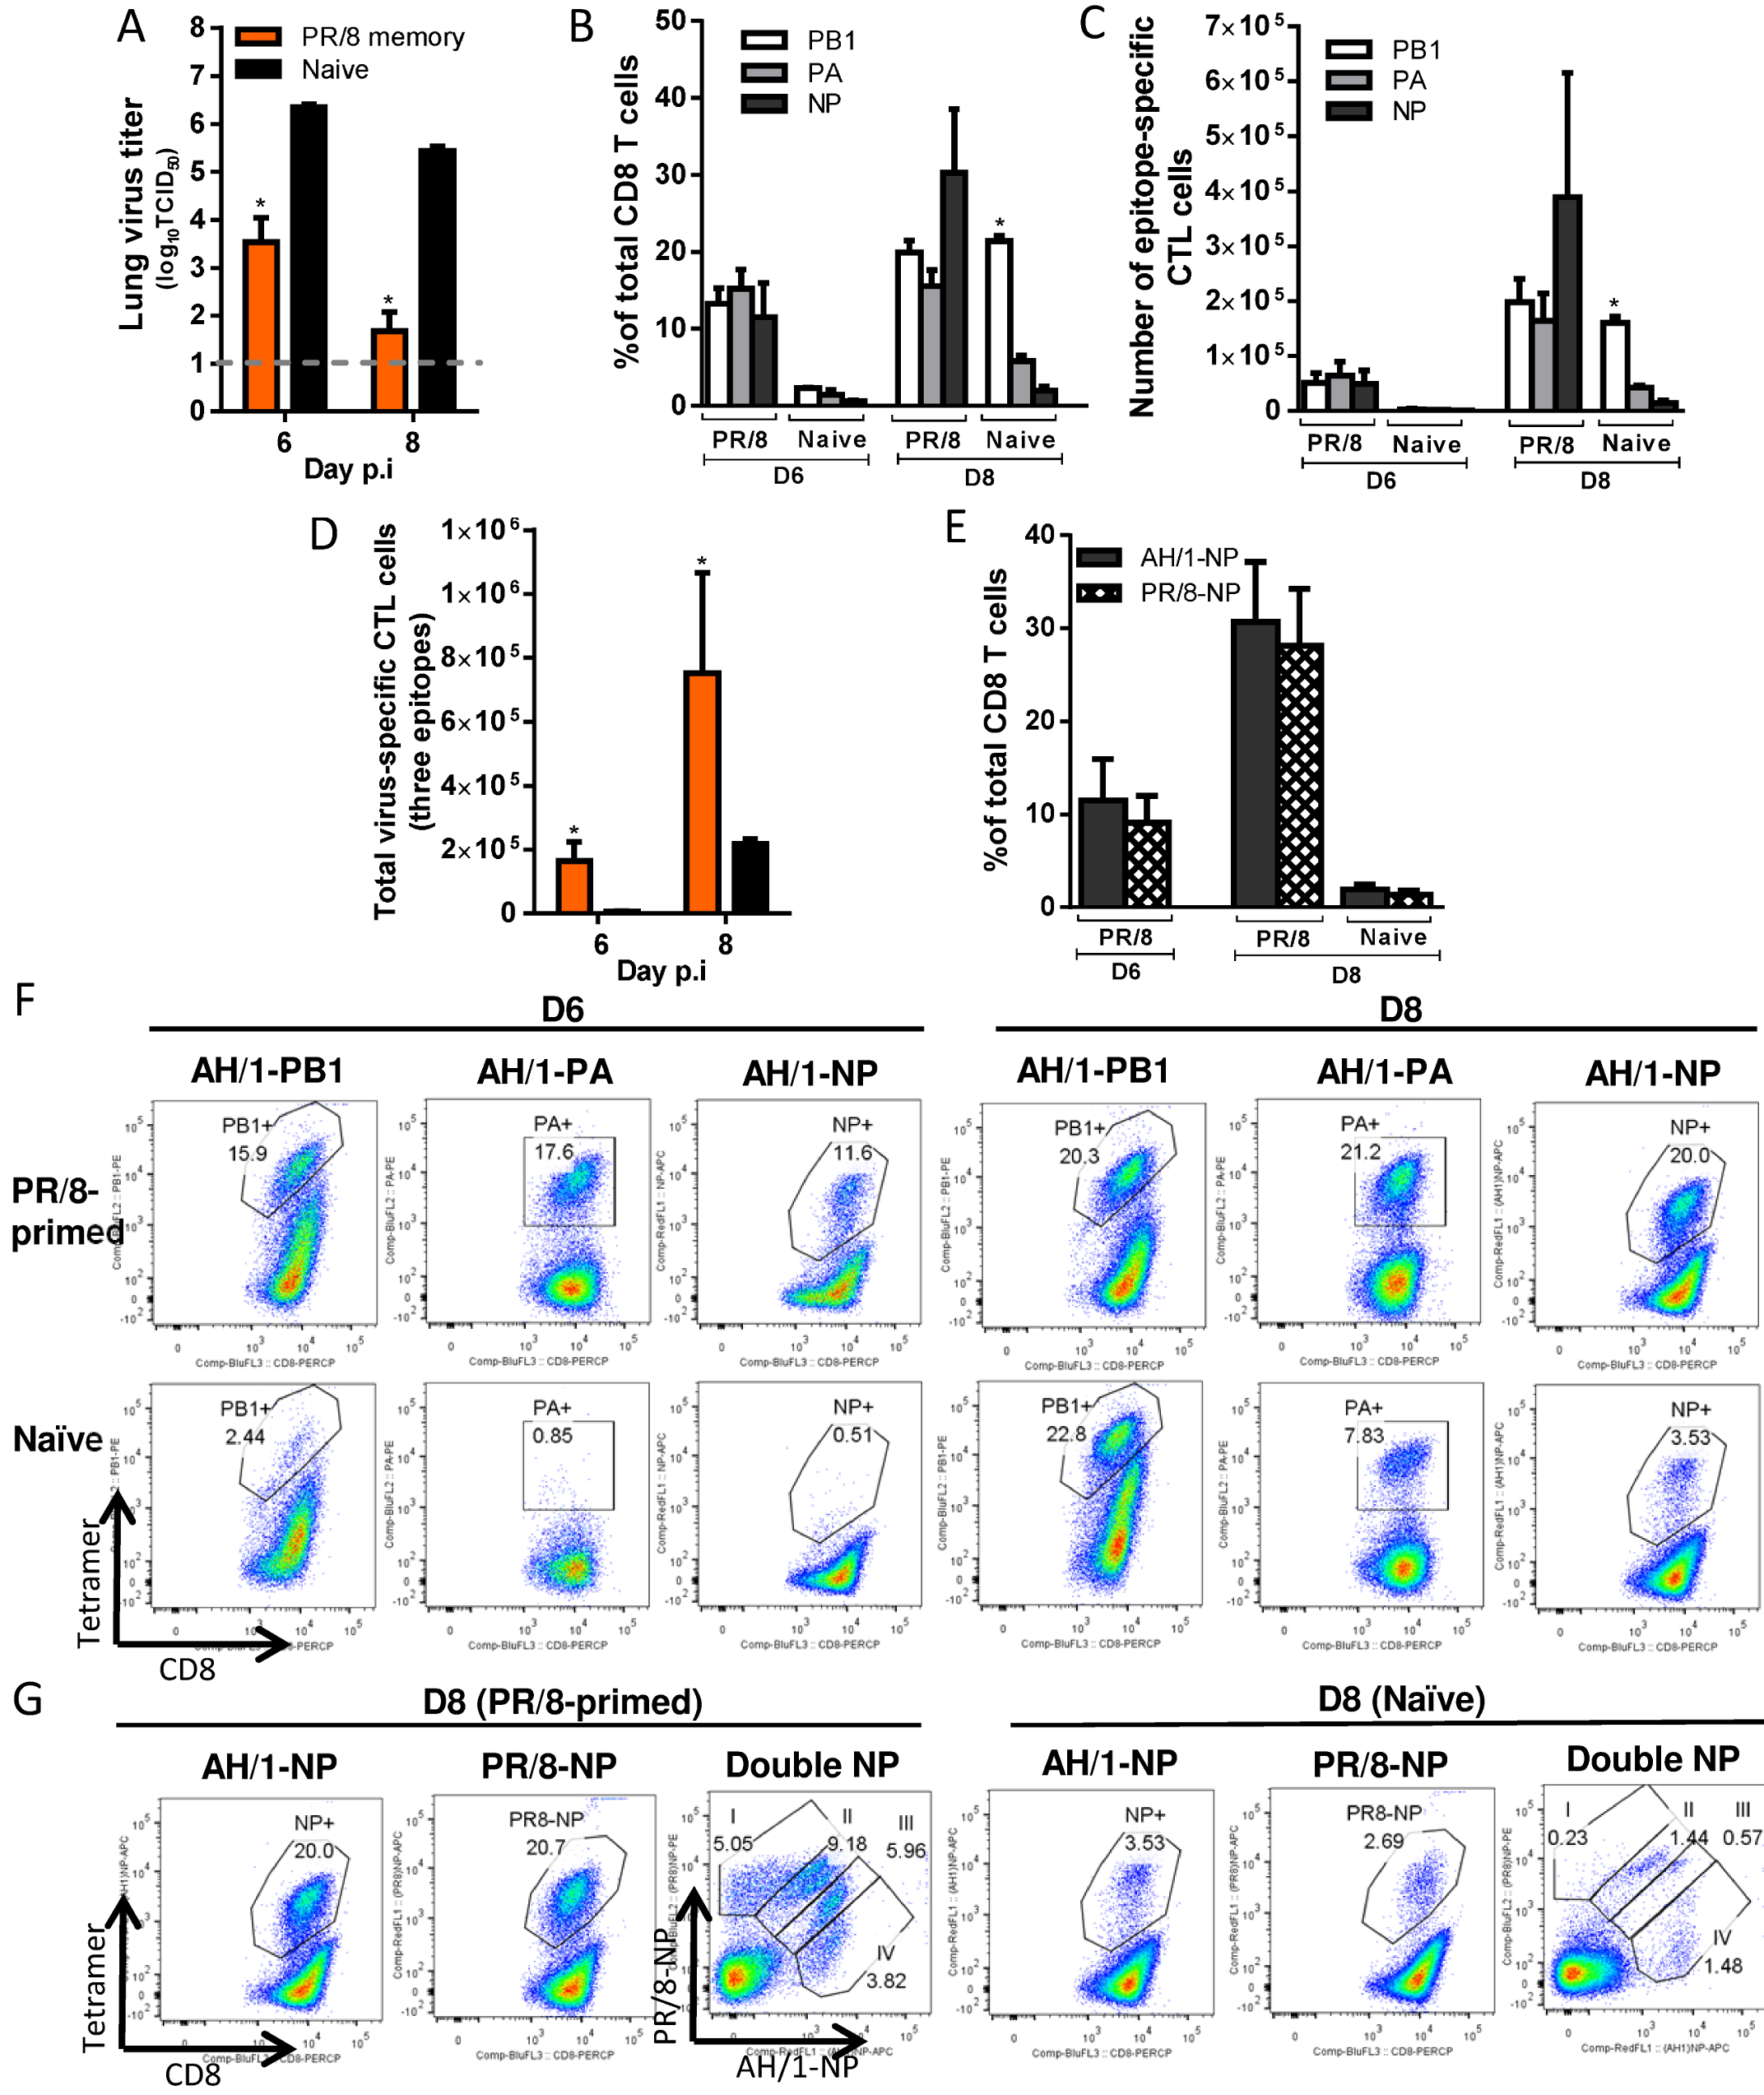 Comparing the primary and secondary CTL responses in naïve and PR/8(H1N1)-primed mice challenged with the H7N9 virus.